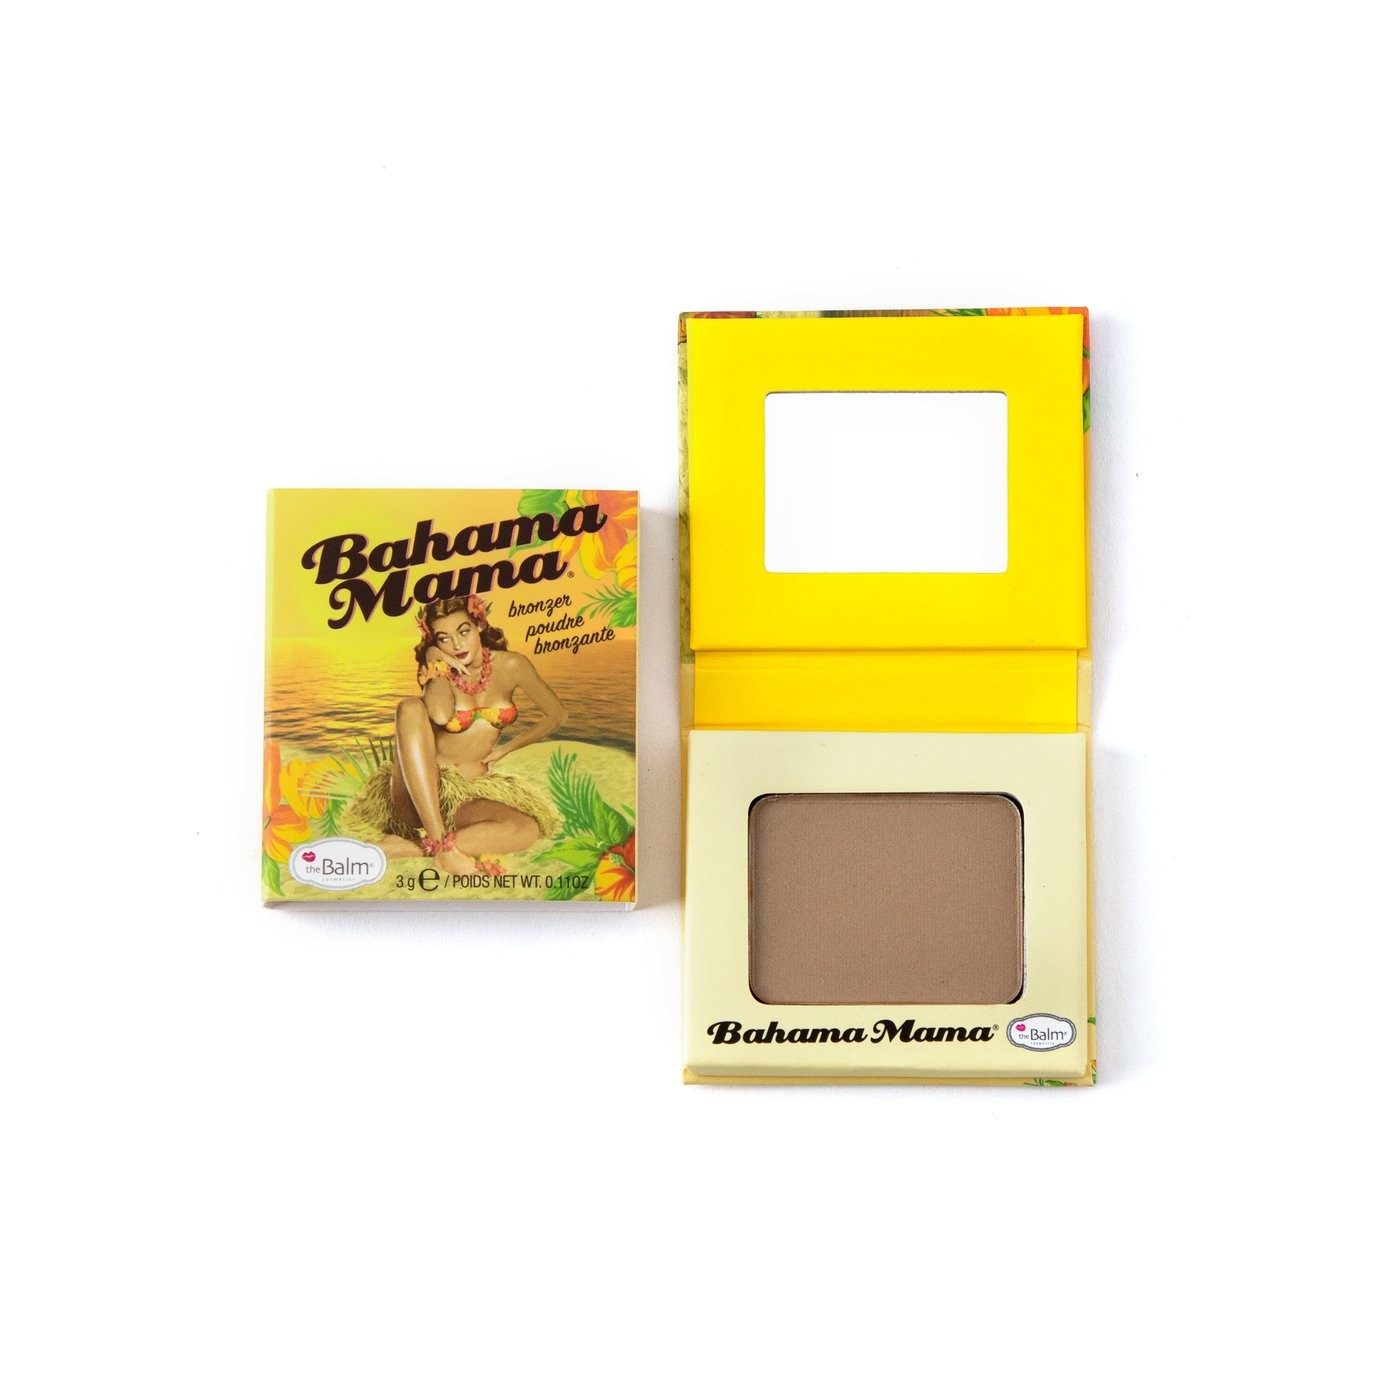 Bronzer, Shadow & Contour Powder - Bahama Mama Travel Size